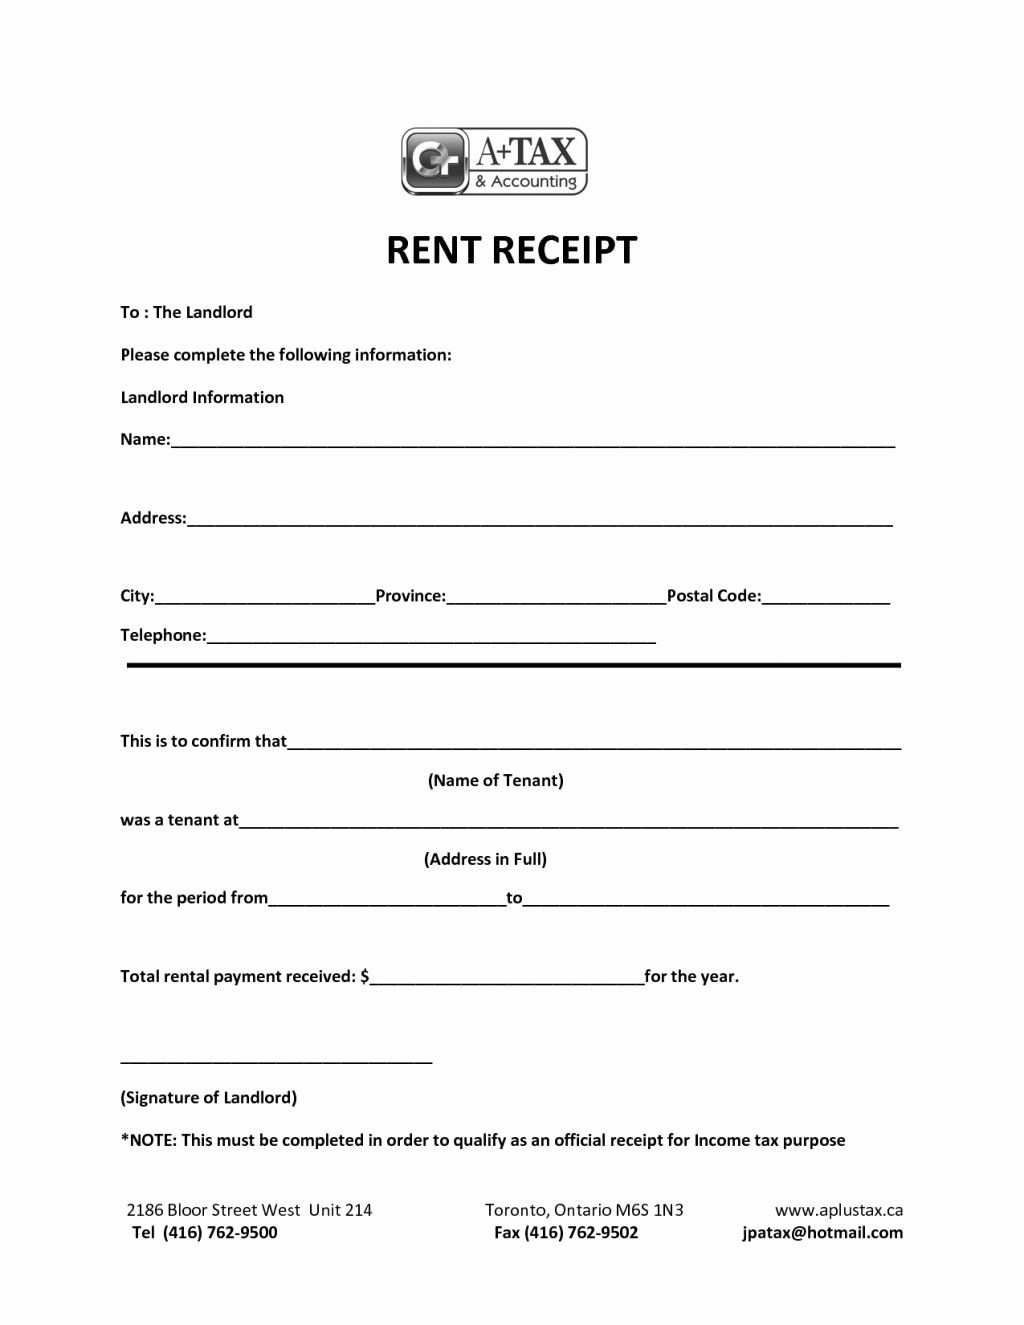 Fake Credit Report Template Inspirational Fake Credit Report Template In 2021 Statement Template Receipt Template Invoice Template Word